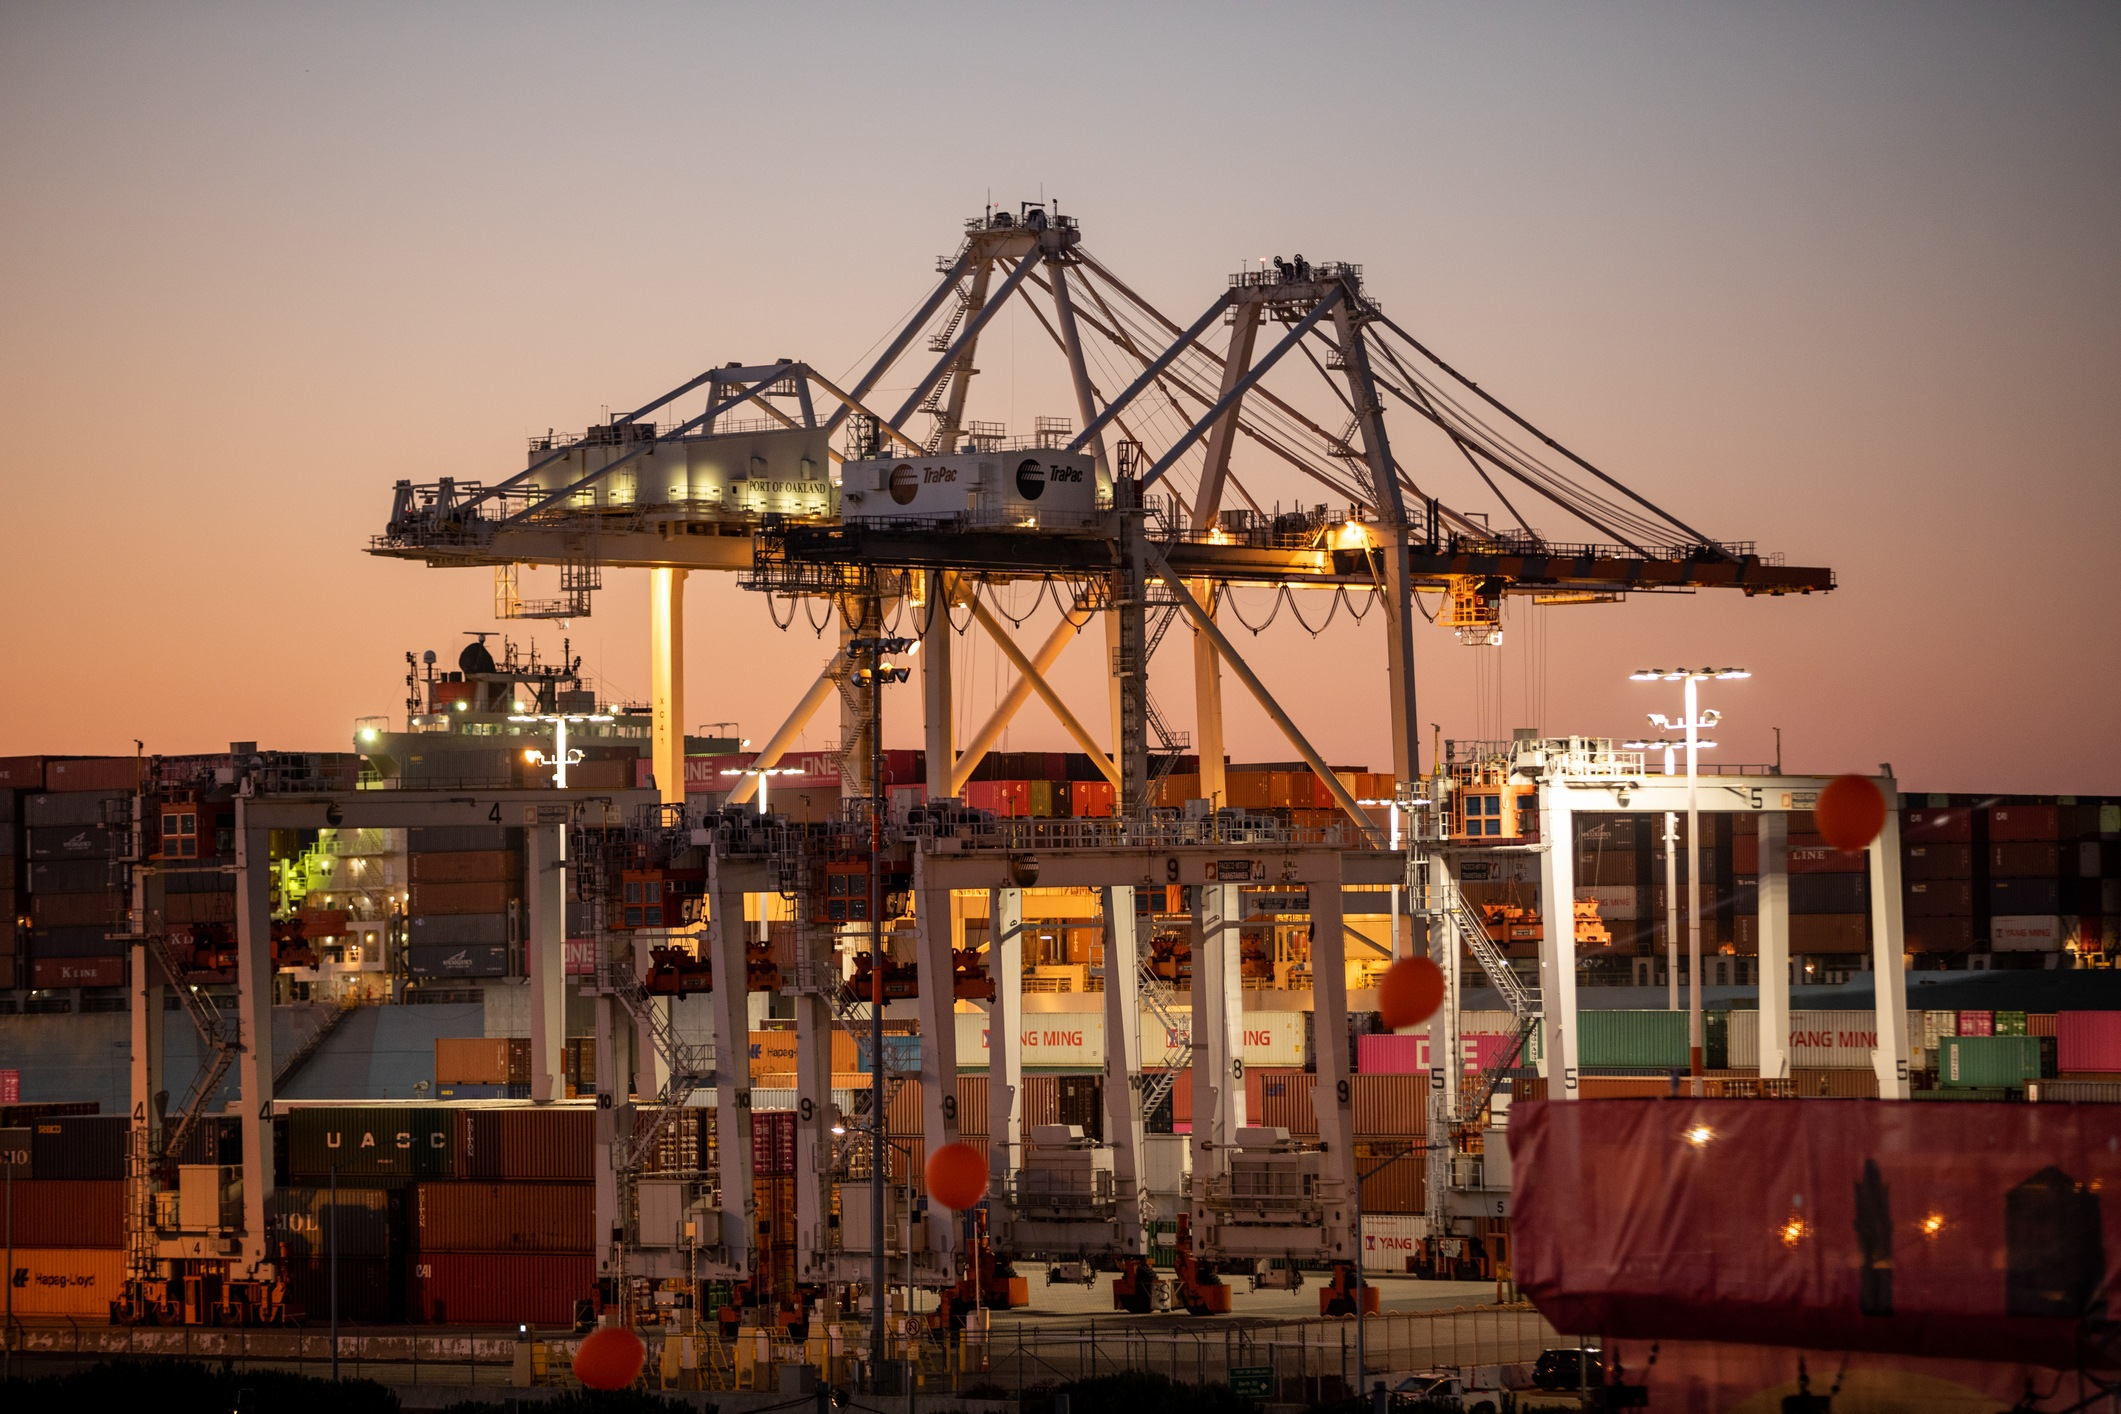 A dusk view of the shipping containers and longshoreman equipment at the Port of Oakland